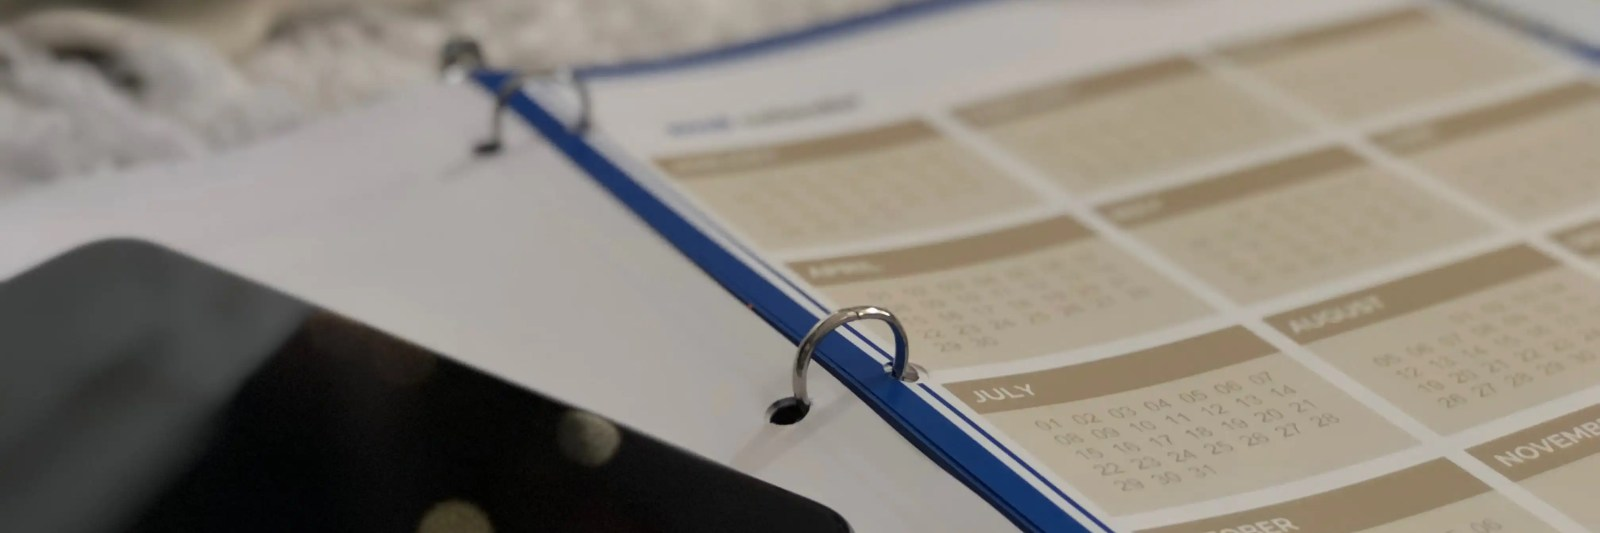 Using a blogging planner to calendar out your blog posts.